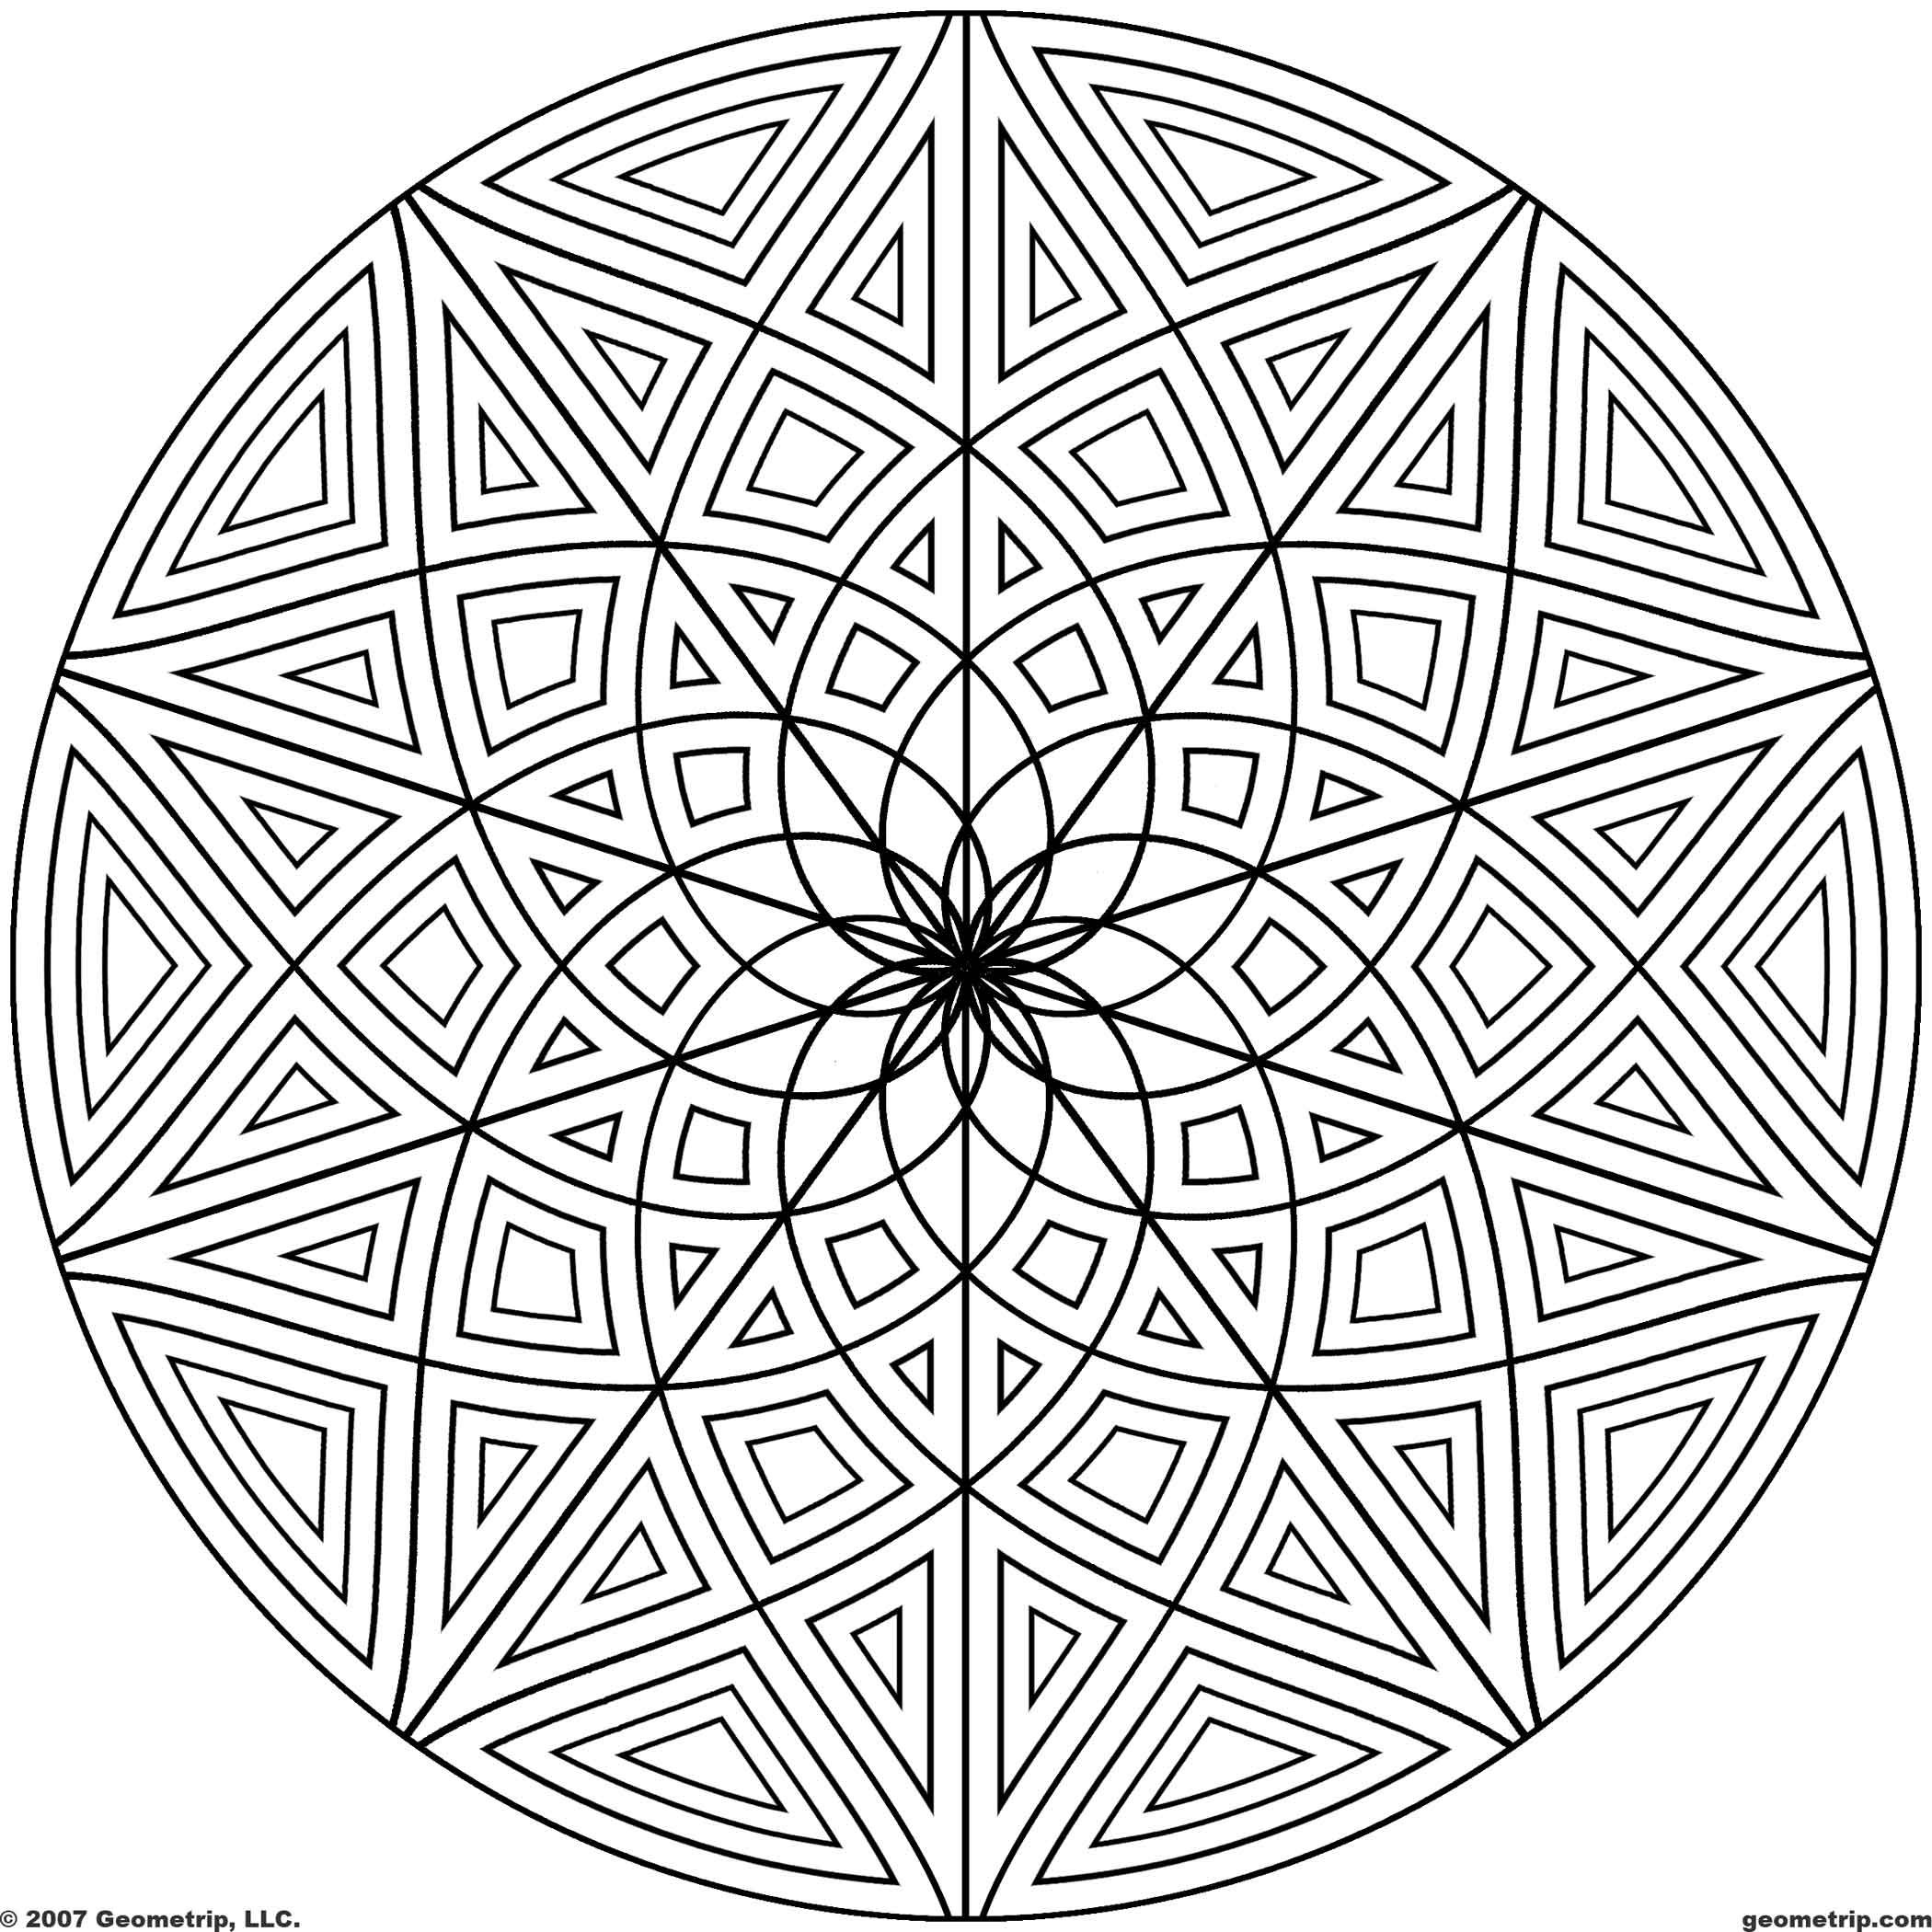 images of printable hard geometric coloring pages | Geometrip.com ...